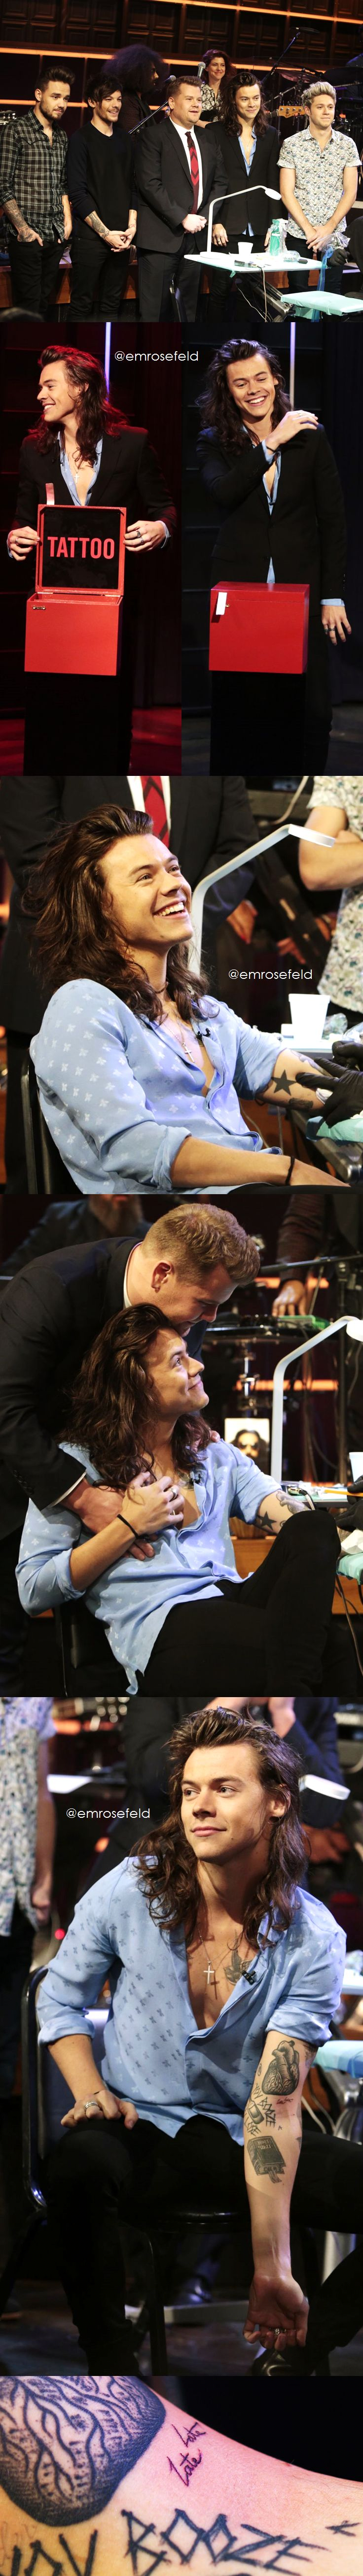 One Direction | The Late Late Show with James Corden 12.3.15 | @emrosefeld |